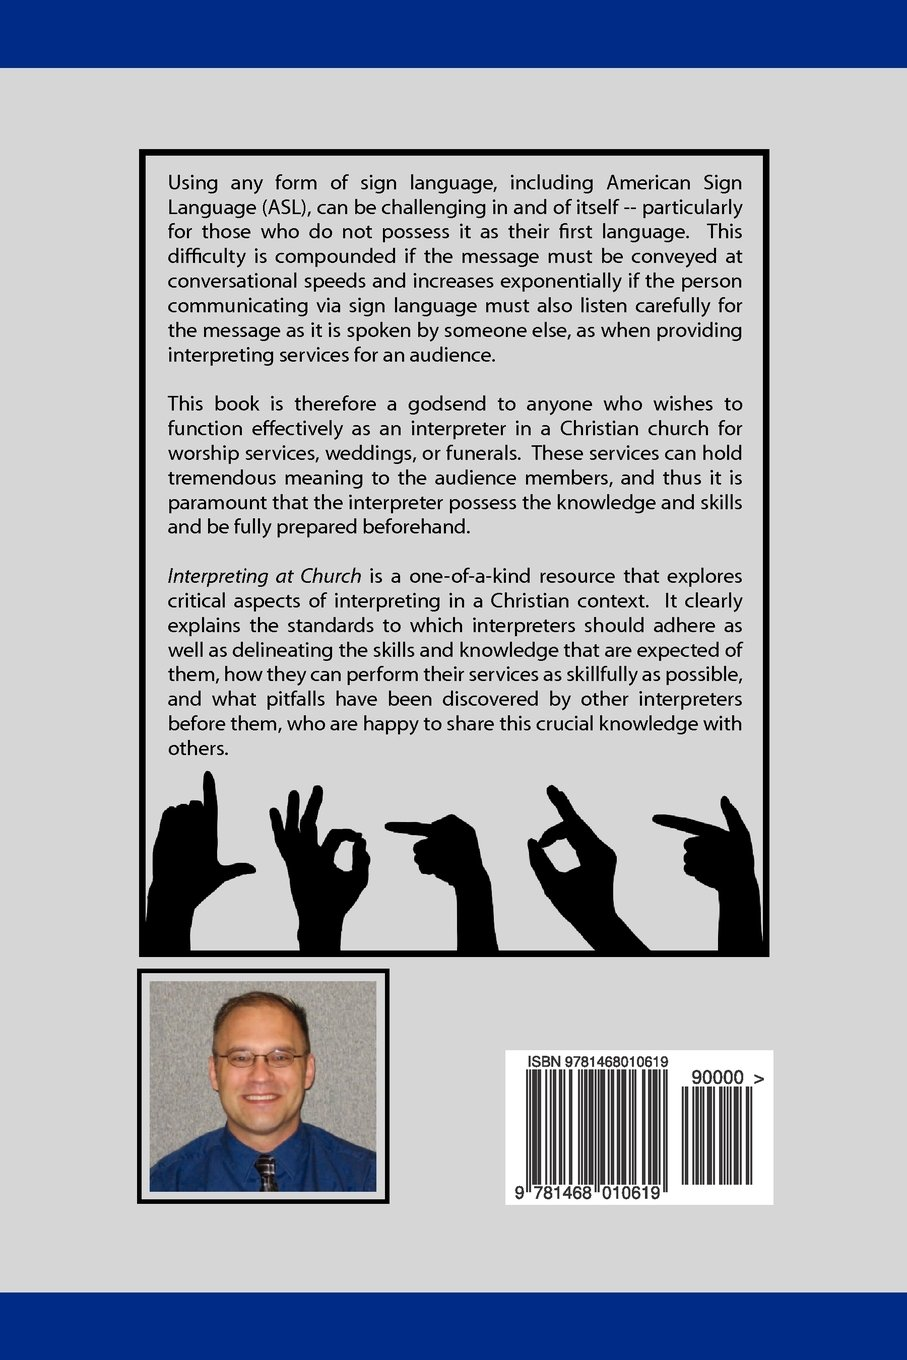 Interpreting at Church: A Paradigm for Sign Language Interpreters, 3rd Edition by Leo Yates Jr